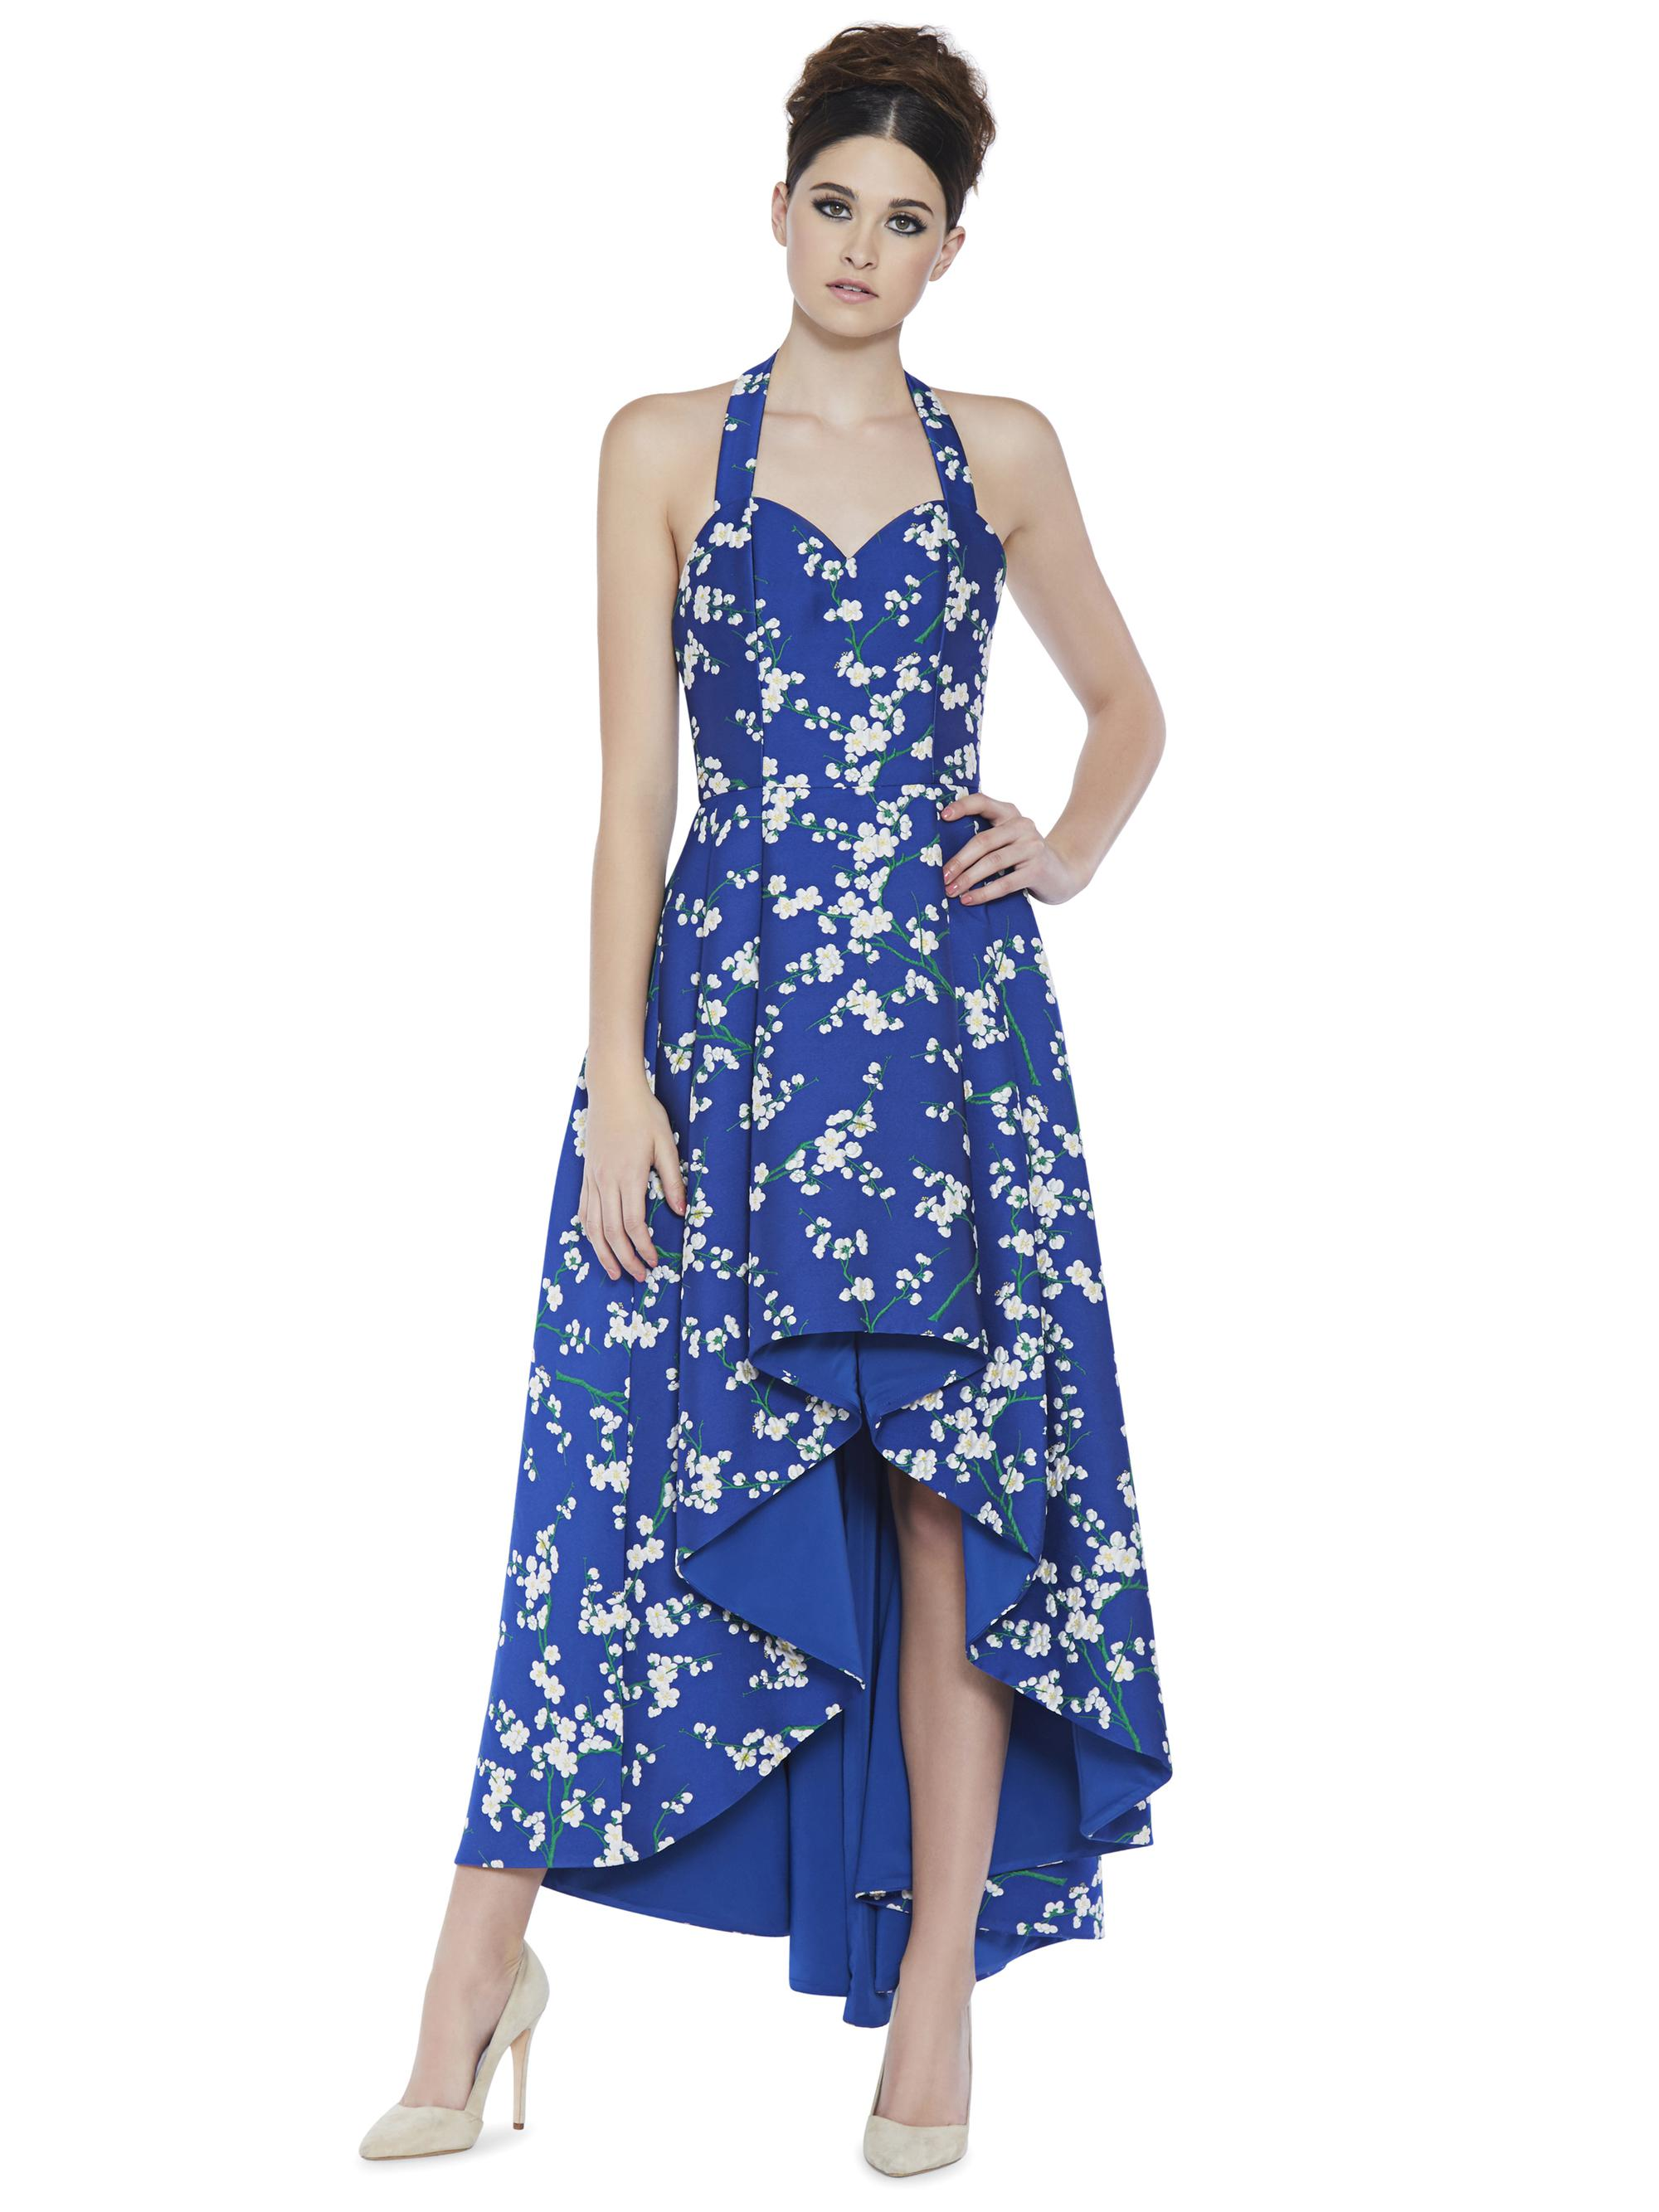 Unique Alice Blue Gown Chords Image Collection - Wedding and flowers ...